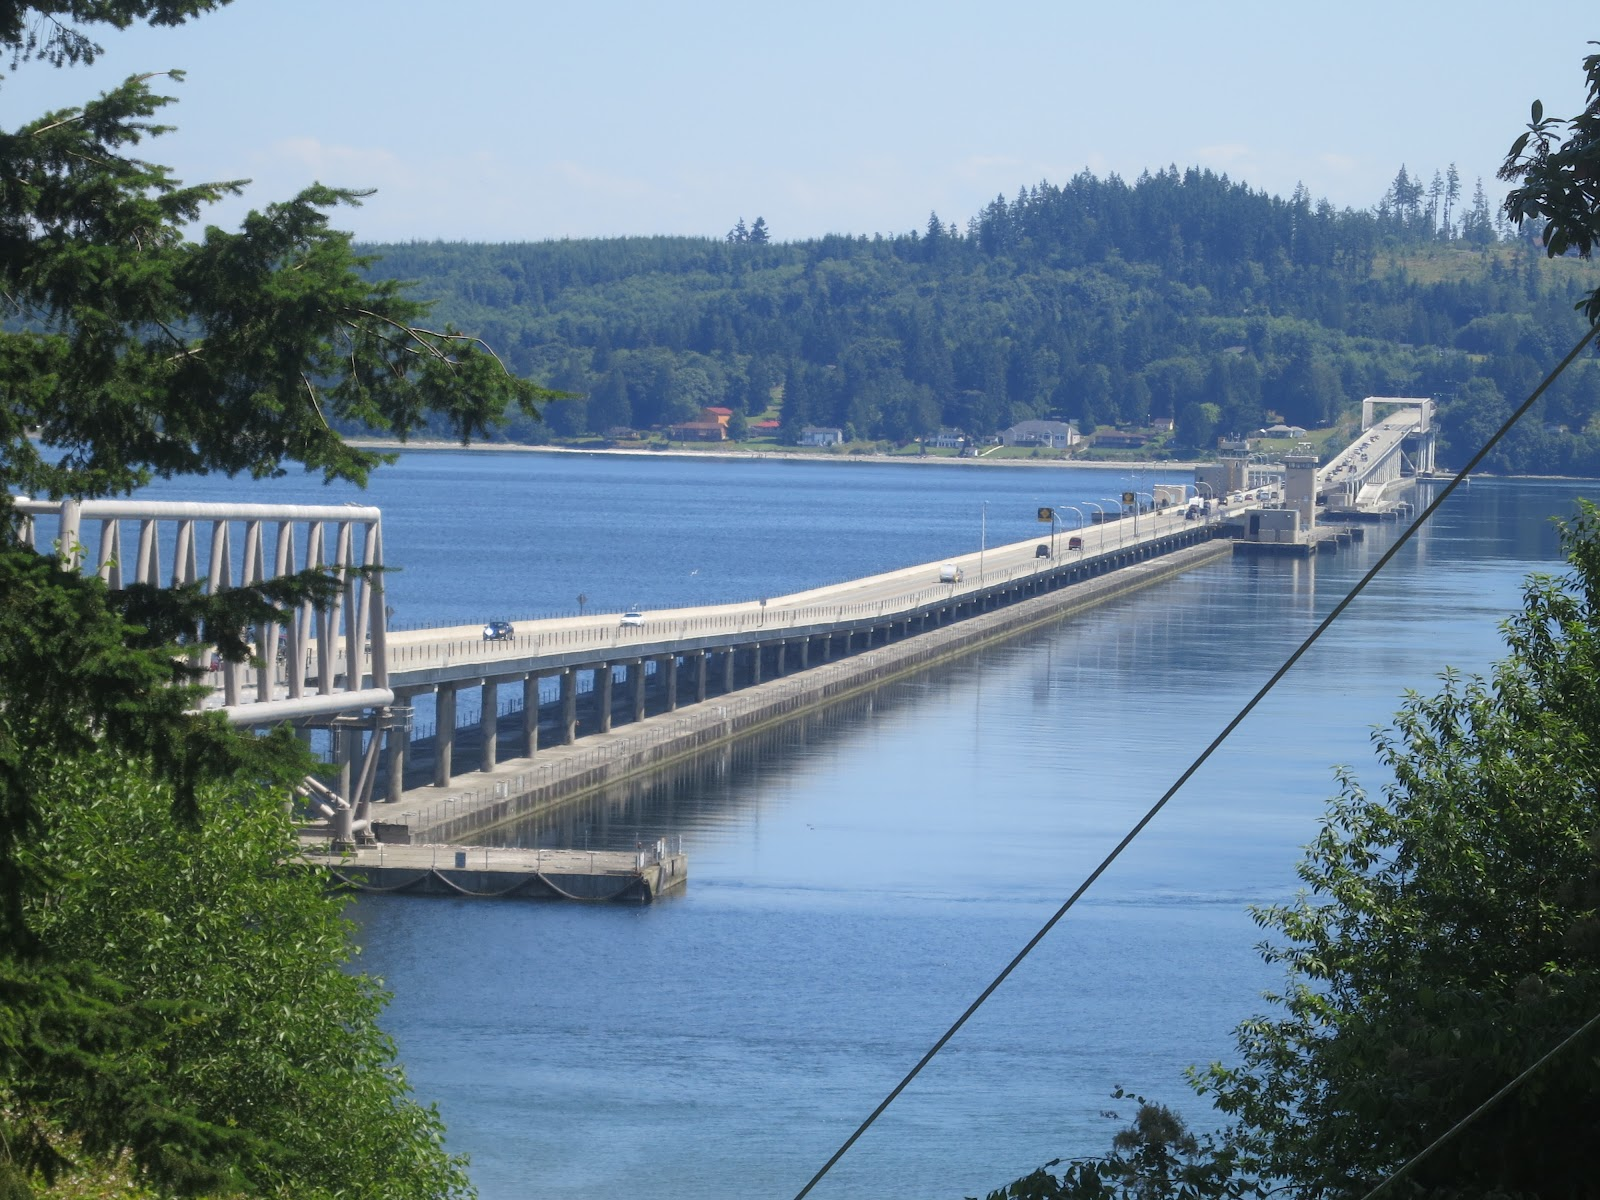 ... picture is from the Kitsap Peninsula or the west end of the bridge